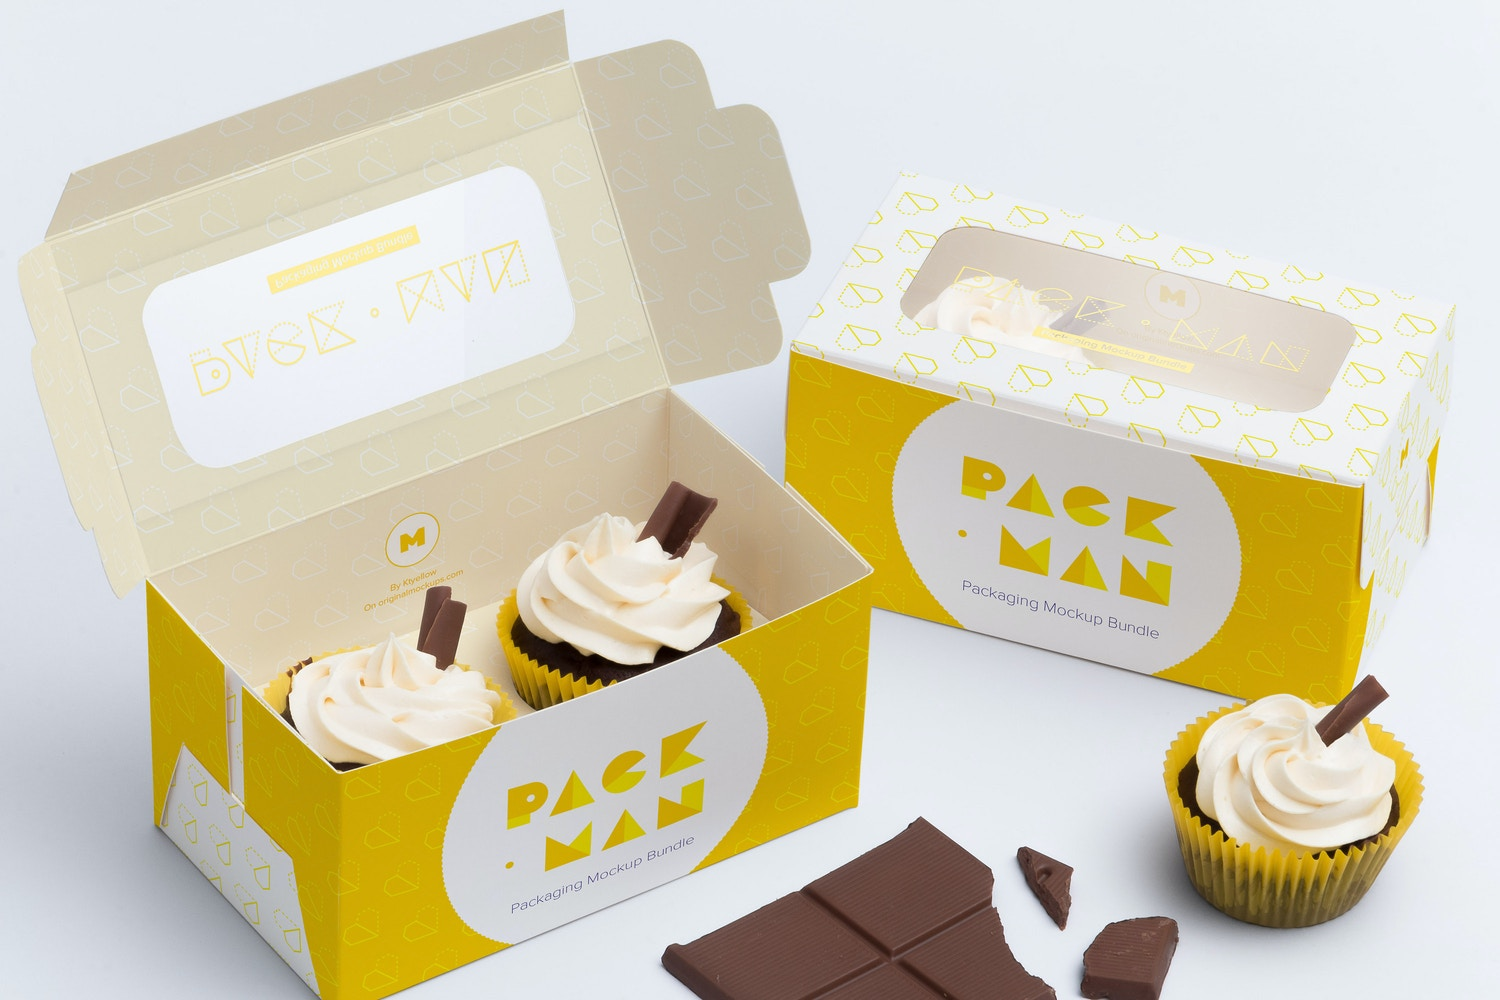 Two Cupcake Box Mockup 01 by Ktyellow  on Original Mockups